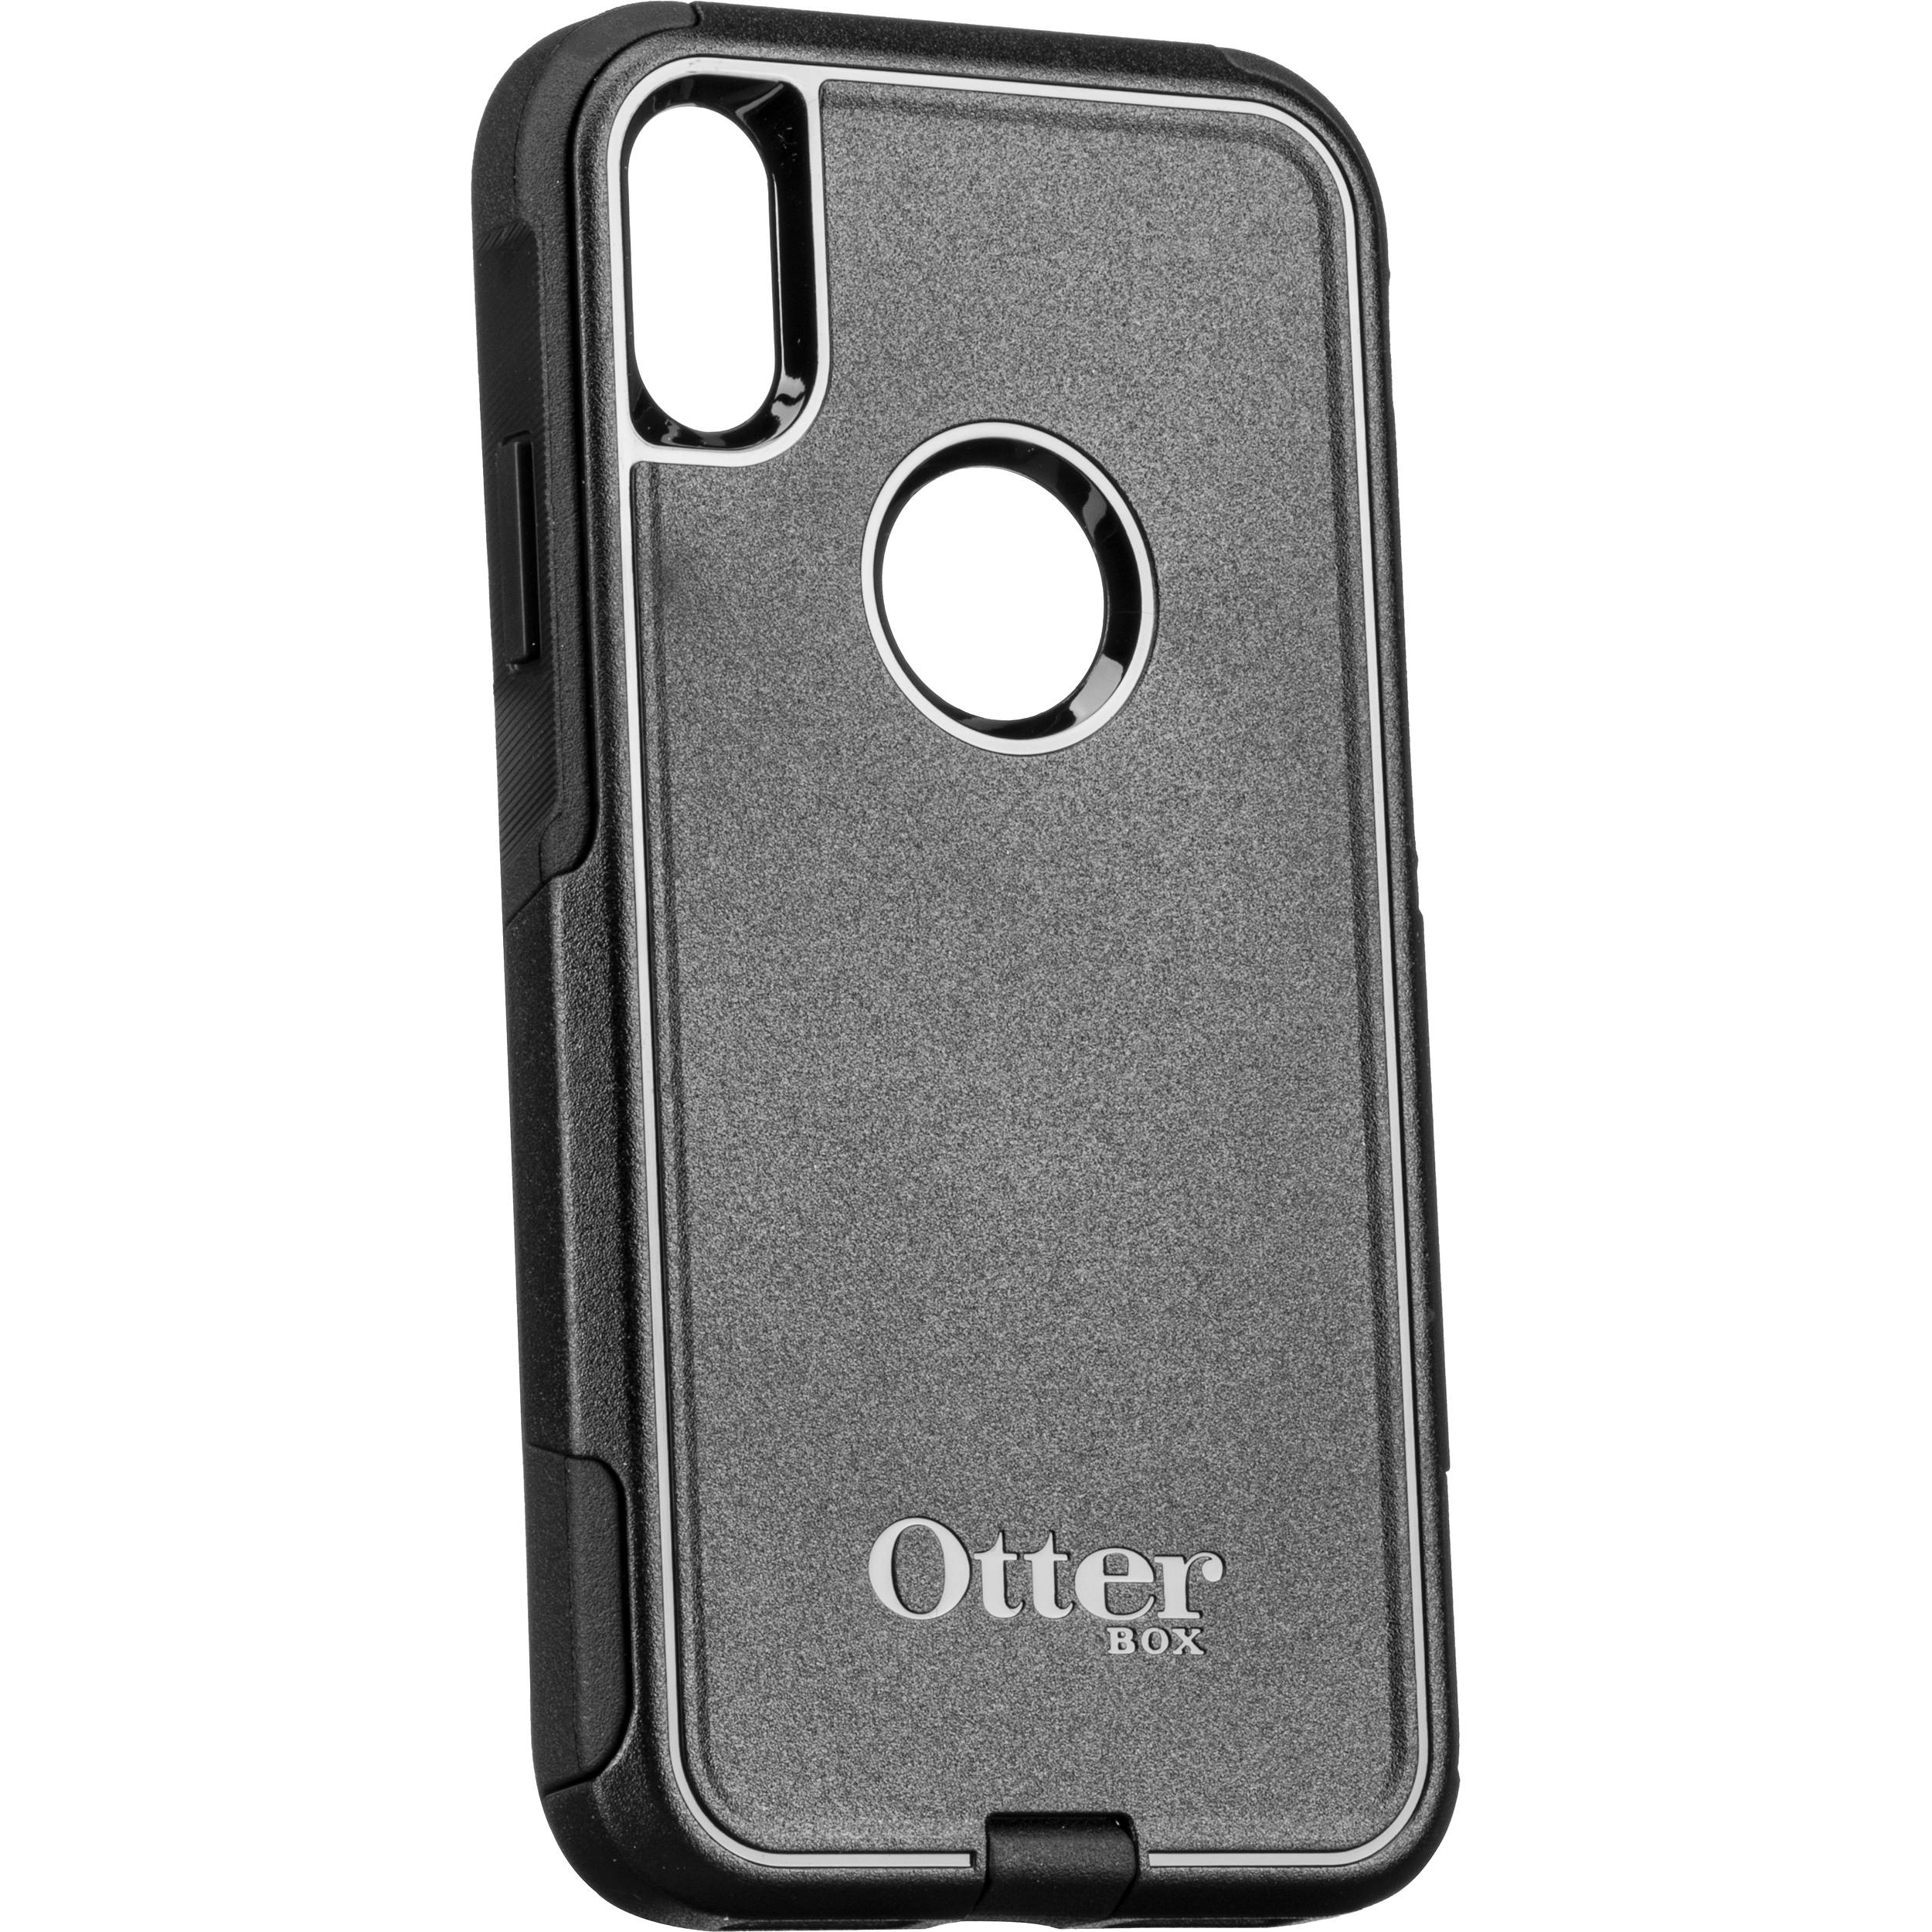 low priced f4ee6 85d89 OtterBox Commuter Series Case for iPhone XR (Black)